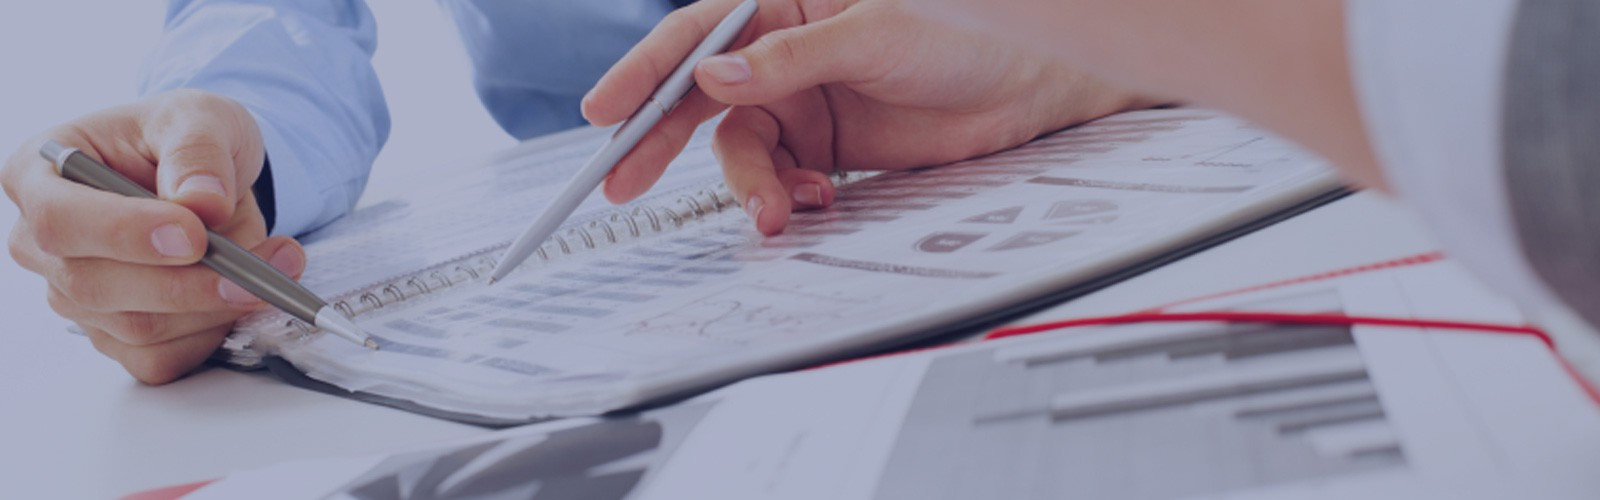 Providing the finest, most efficient and most accurate document preparation services and support